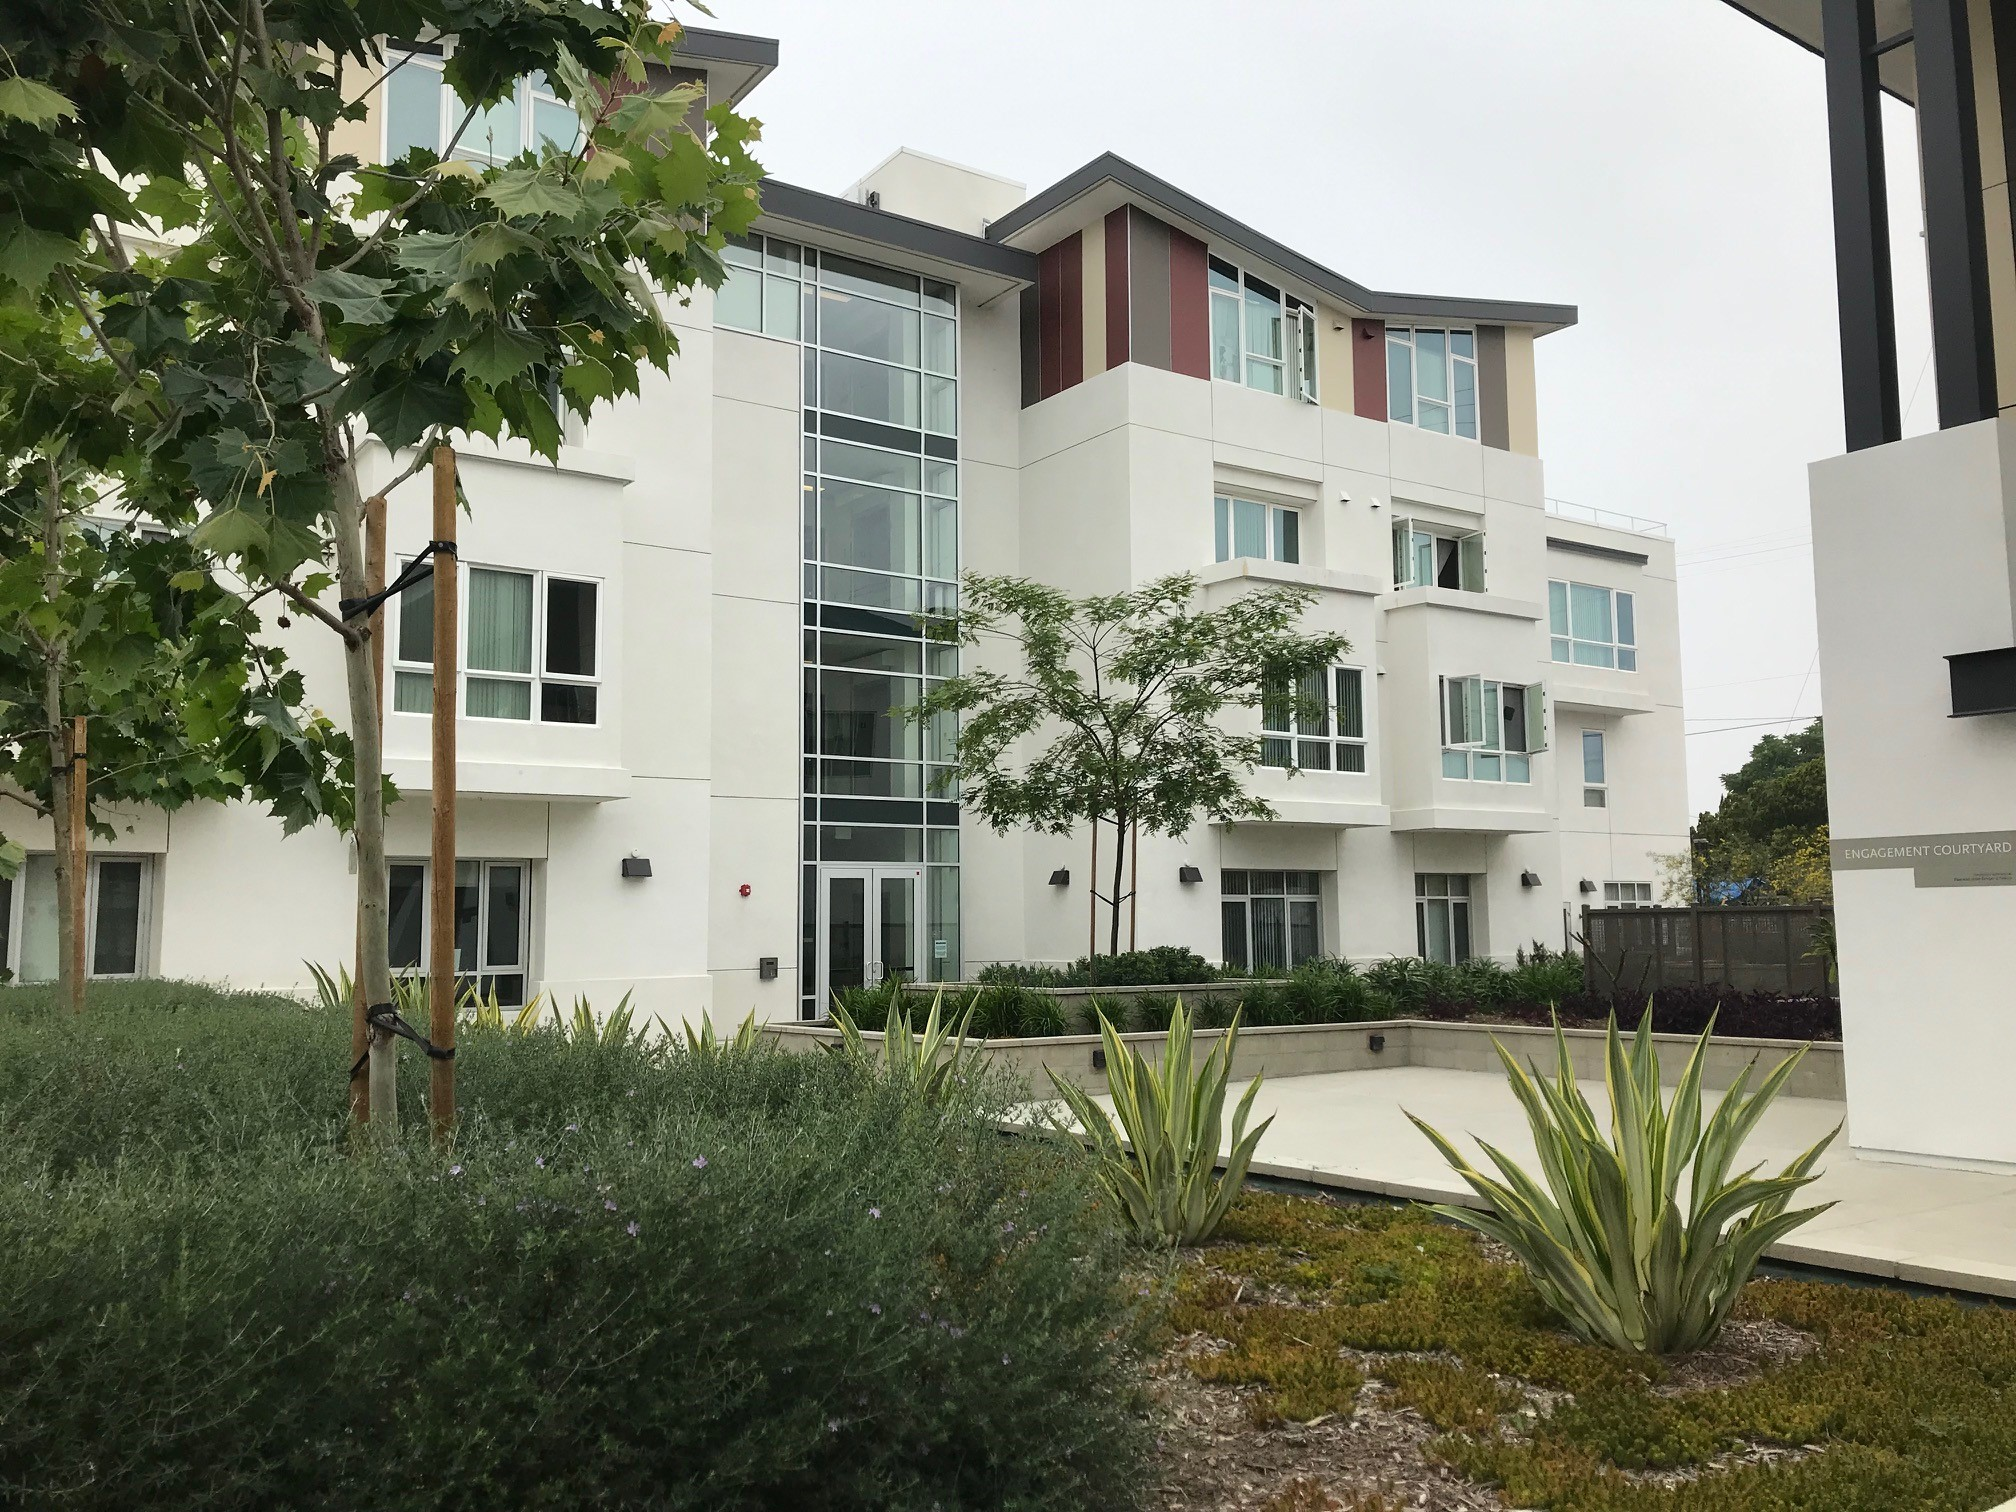 Image of large building with lots of glass windows and a slanted roof-line with alternating earth-toned colors. The ground is landscaped with trees and plants.